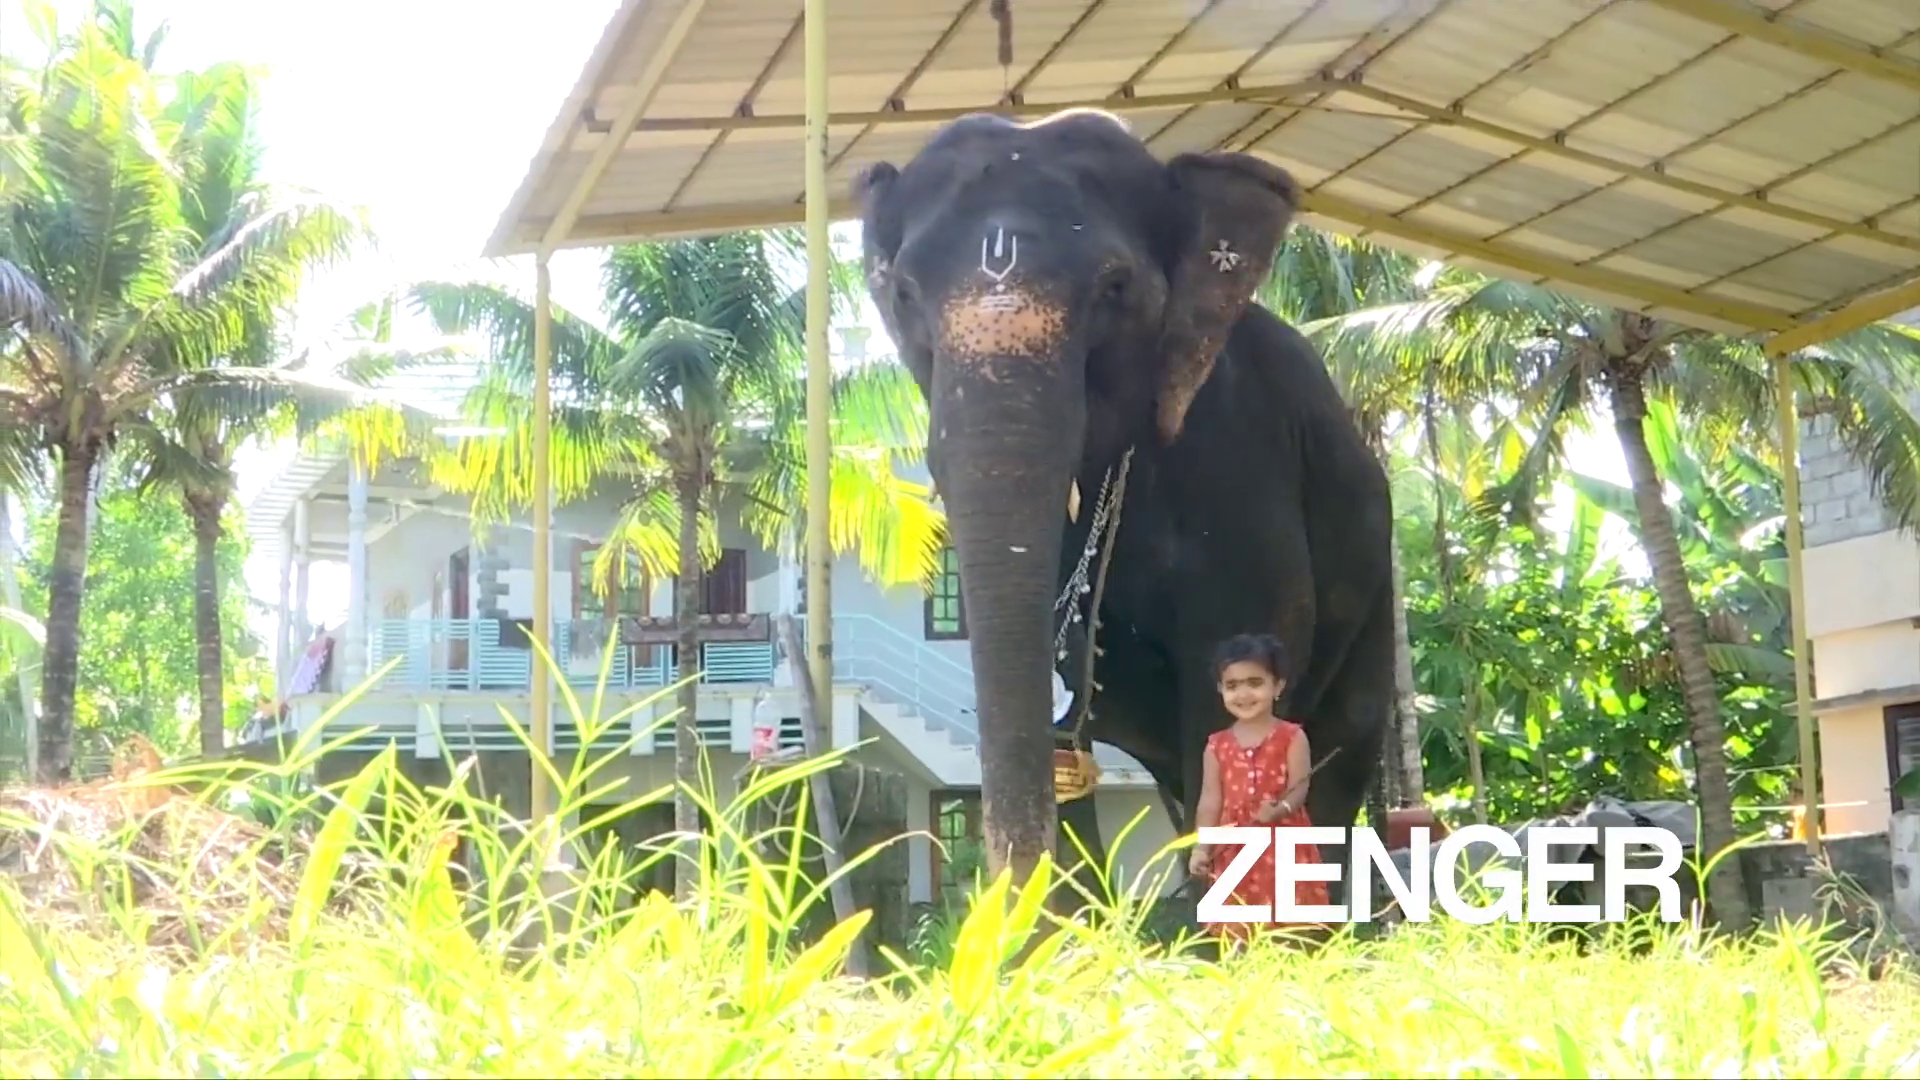 VIDEO: Little girl and 35-year-old elephant develop unlikely friendship